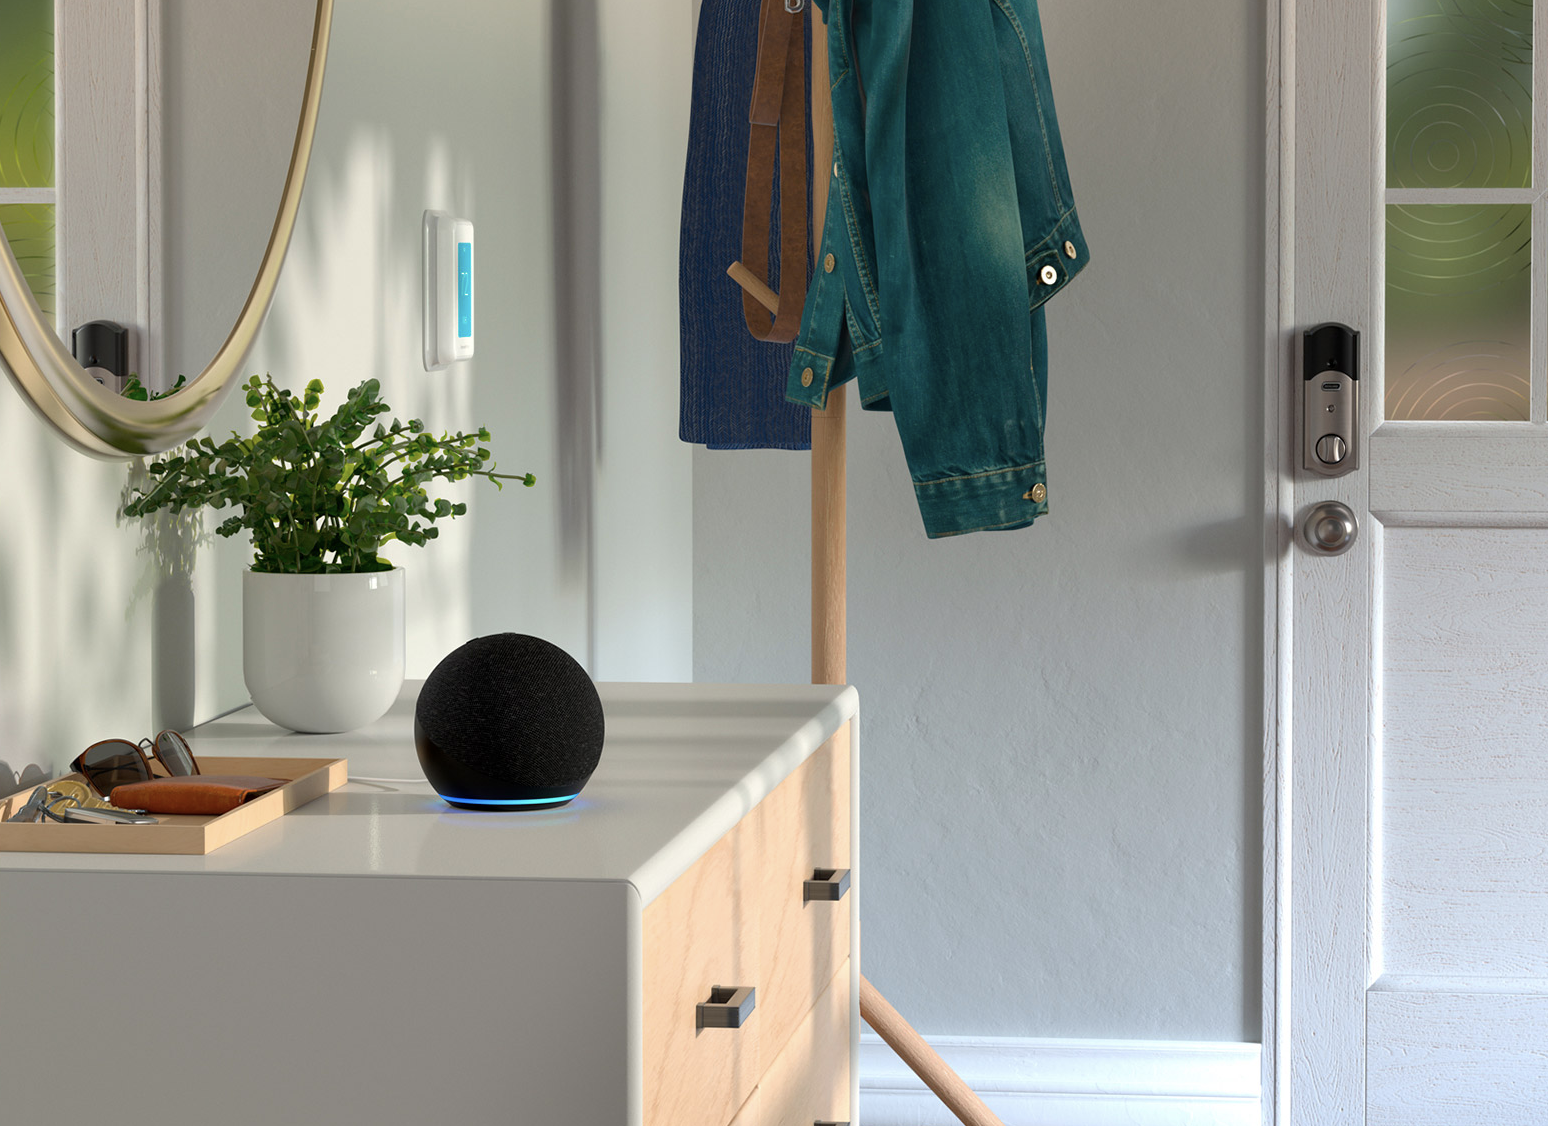 the sphere-shaped echo dot sitting on a dresser in a bedroom